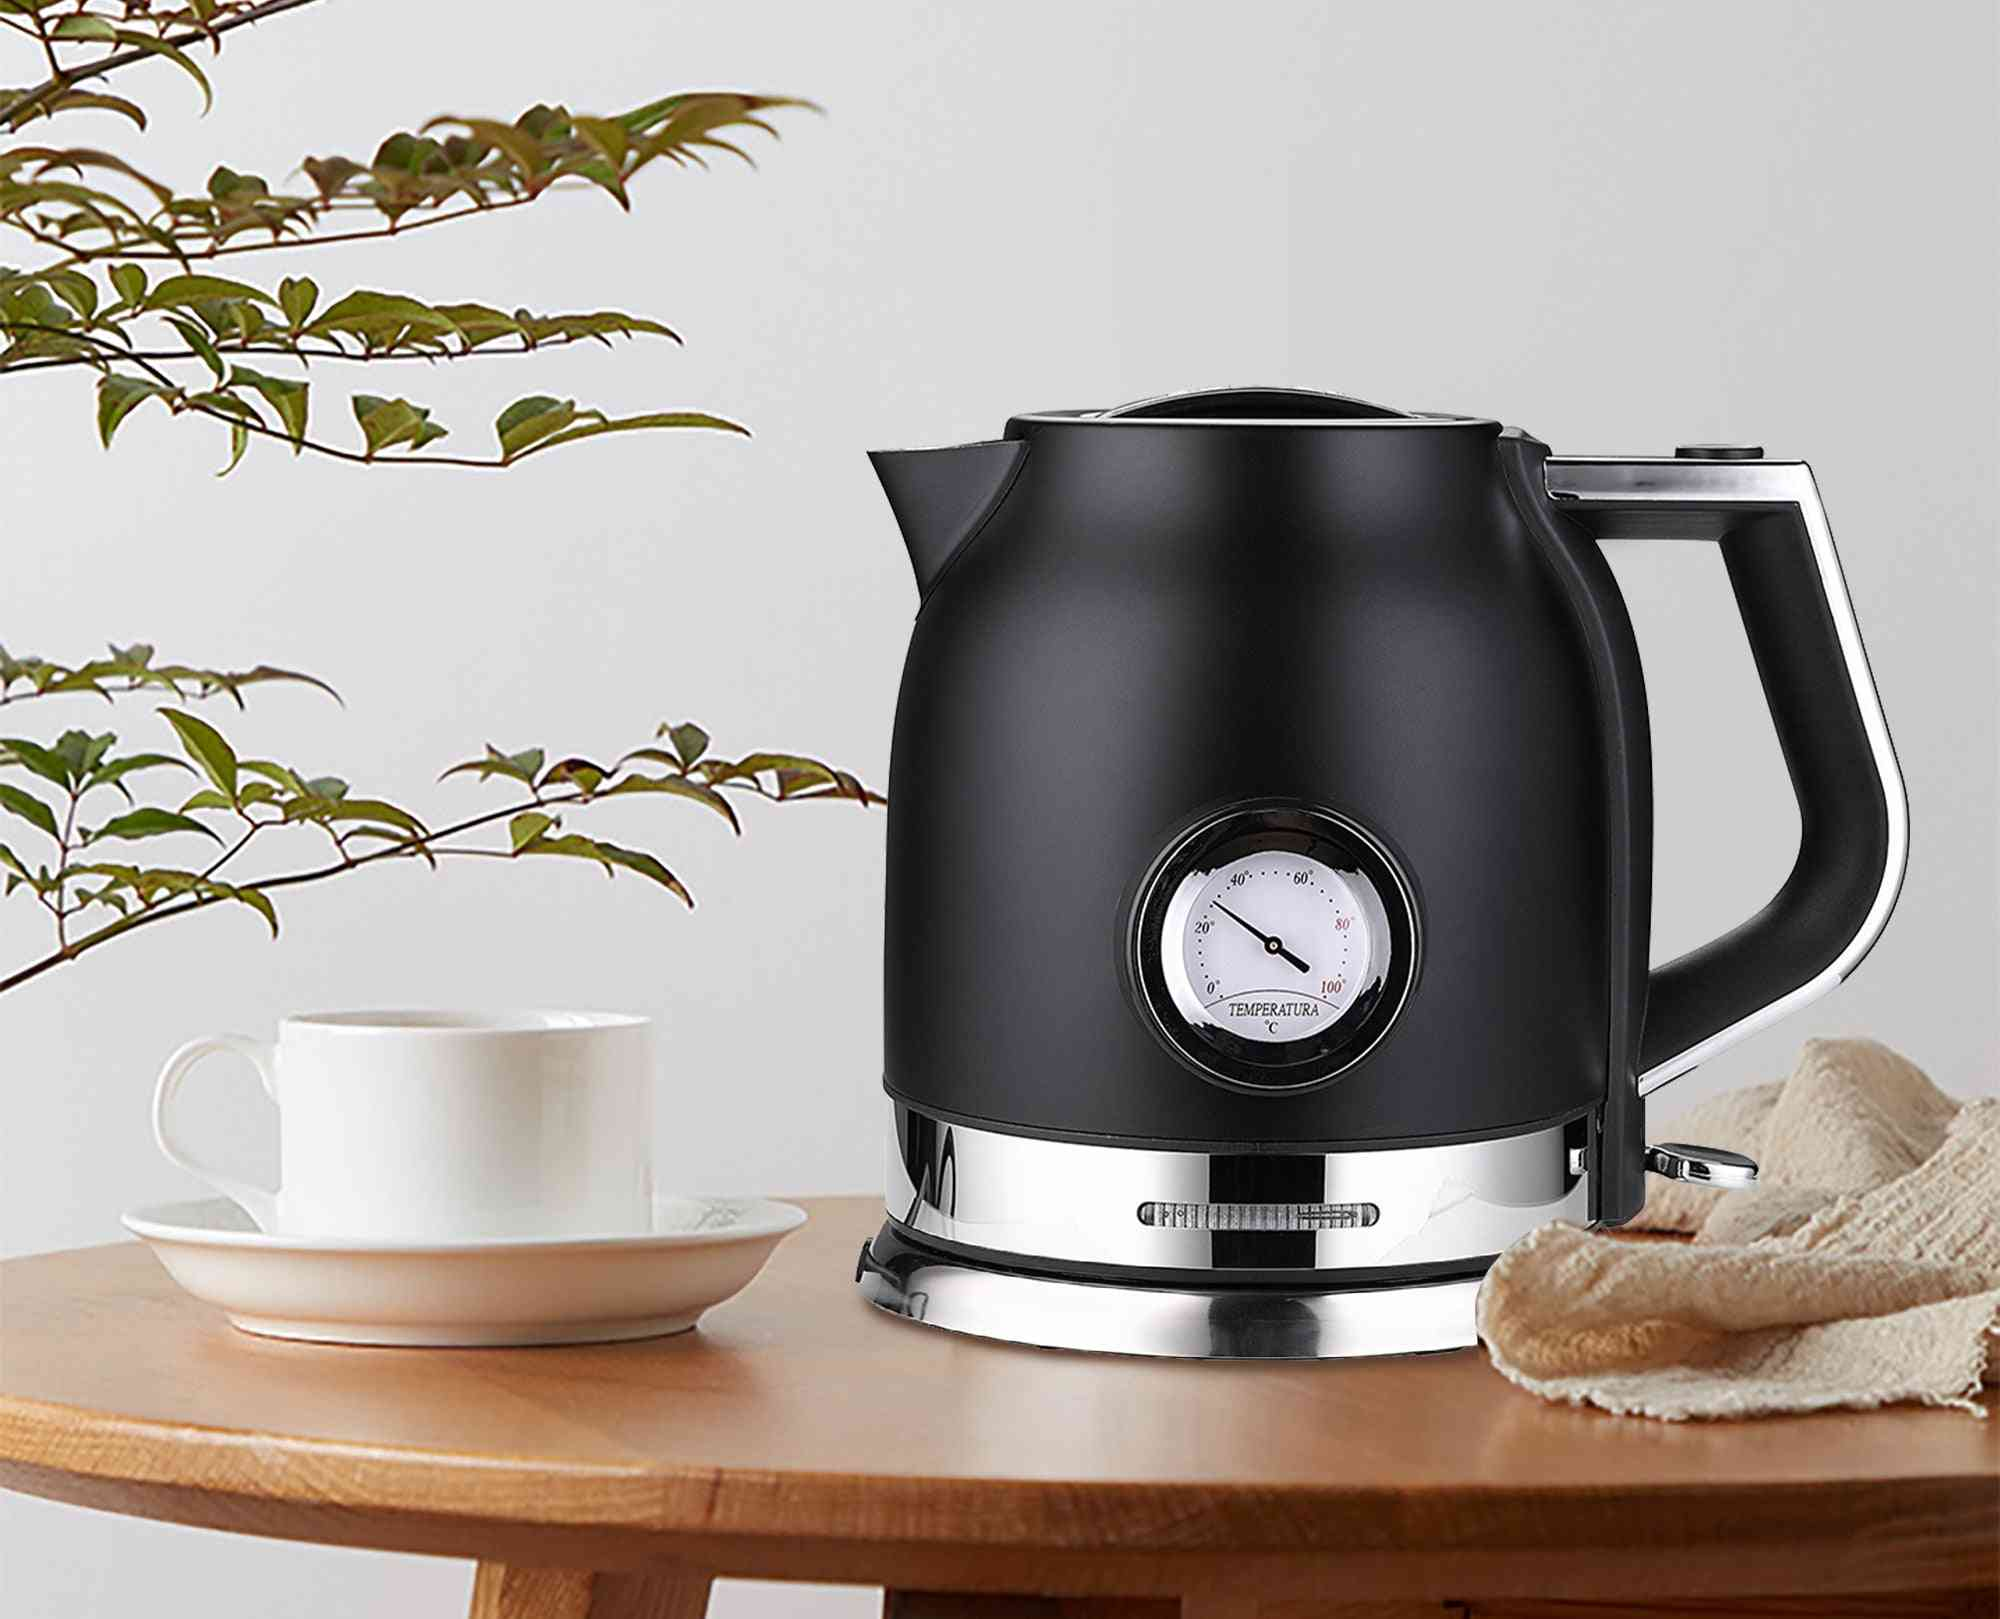 Stainless Steel, Kitchen Smart Whistle, Samovar Tea Pot With Water Temperature Control Meter